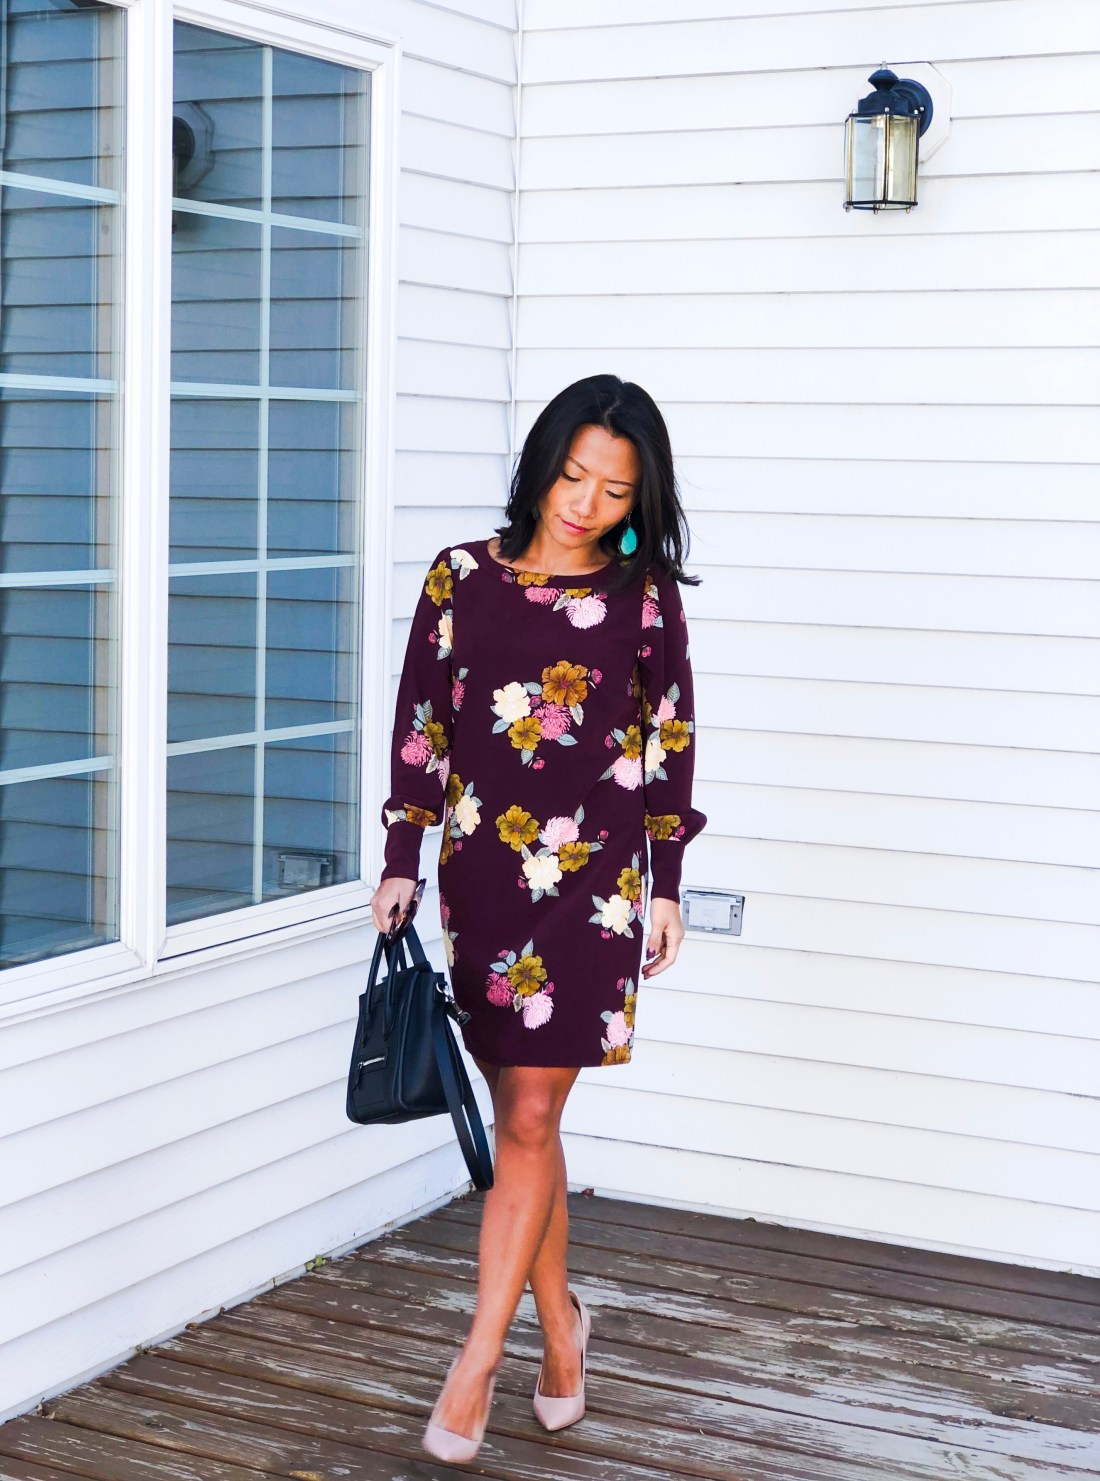 137a9a0d7c For instance, my LOFT Floral Cuffed Shift Dress is on clearance sale now  for only $18!!!